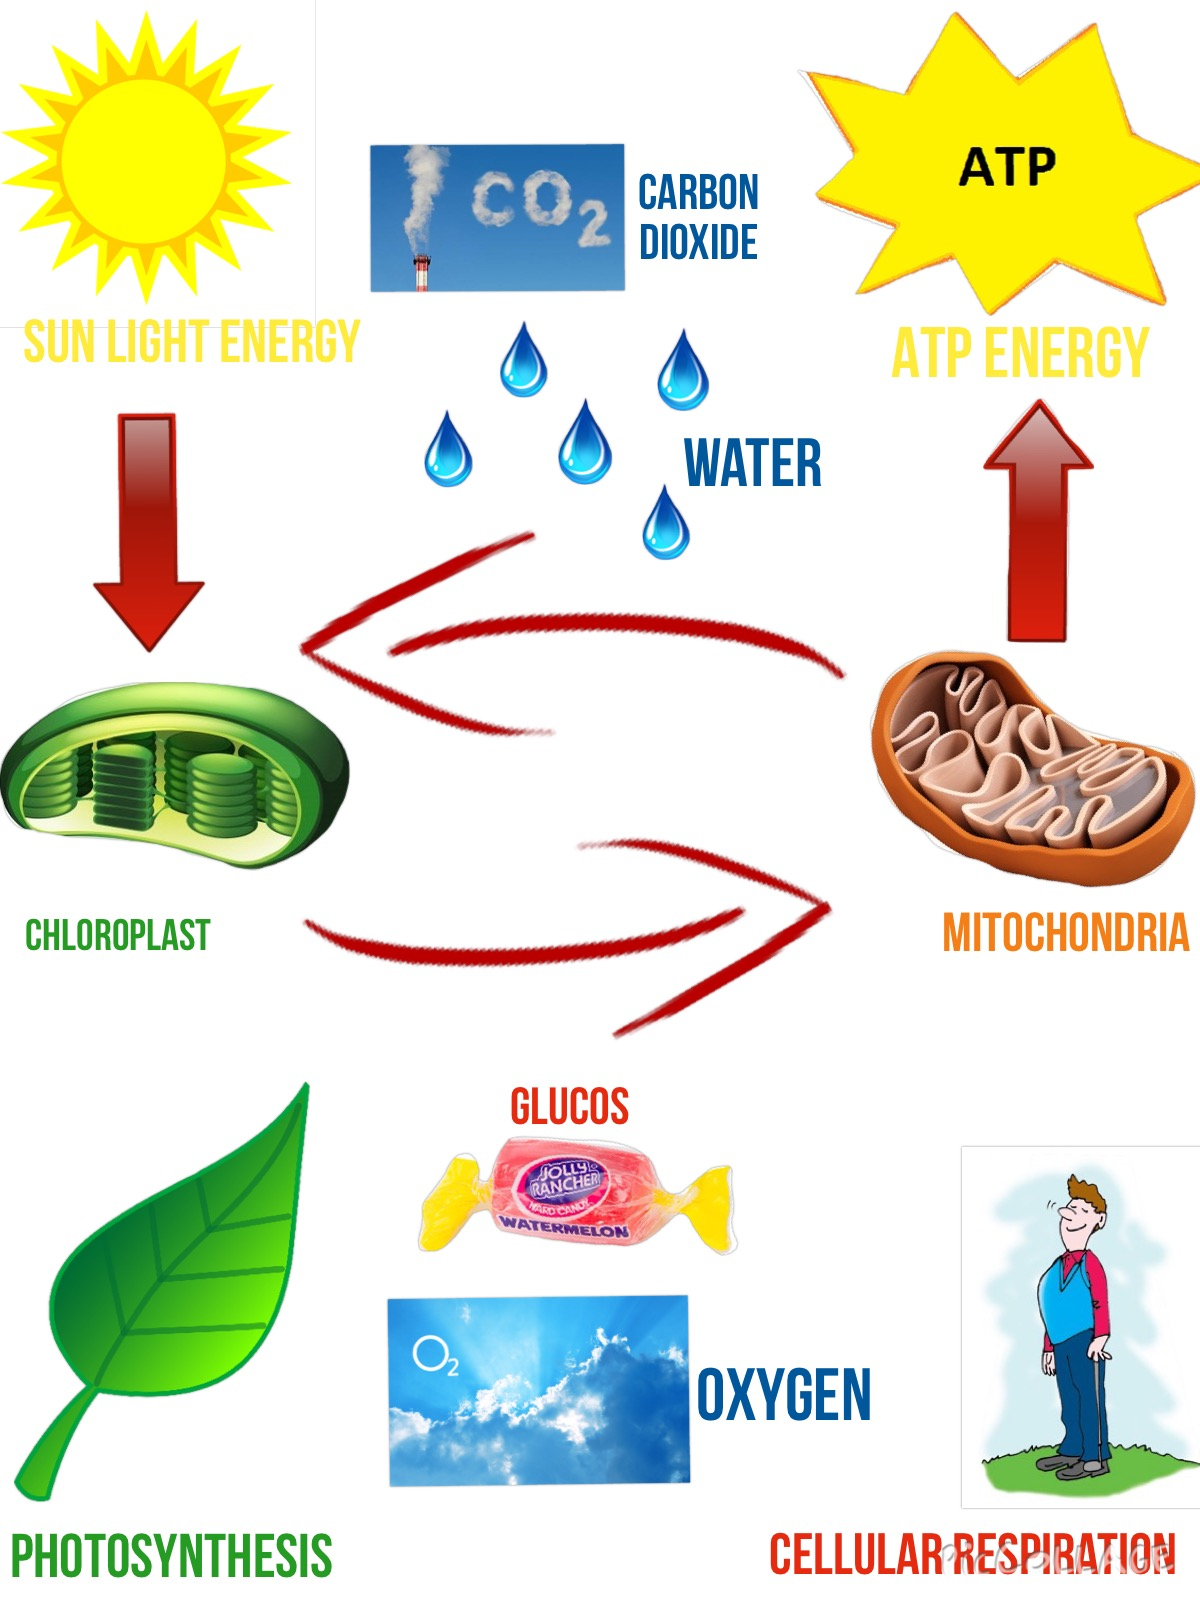 photosynthesis and cellular respiration diagram ocean food chain energy cycle